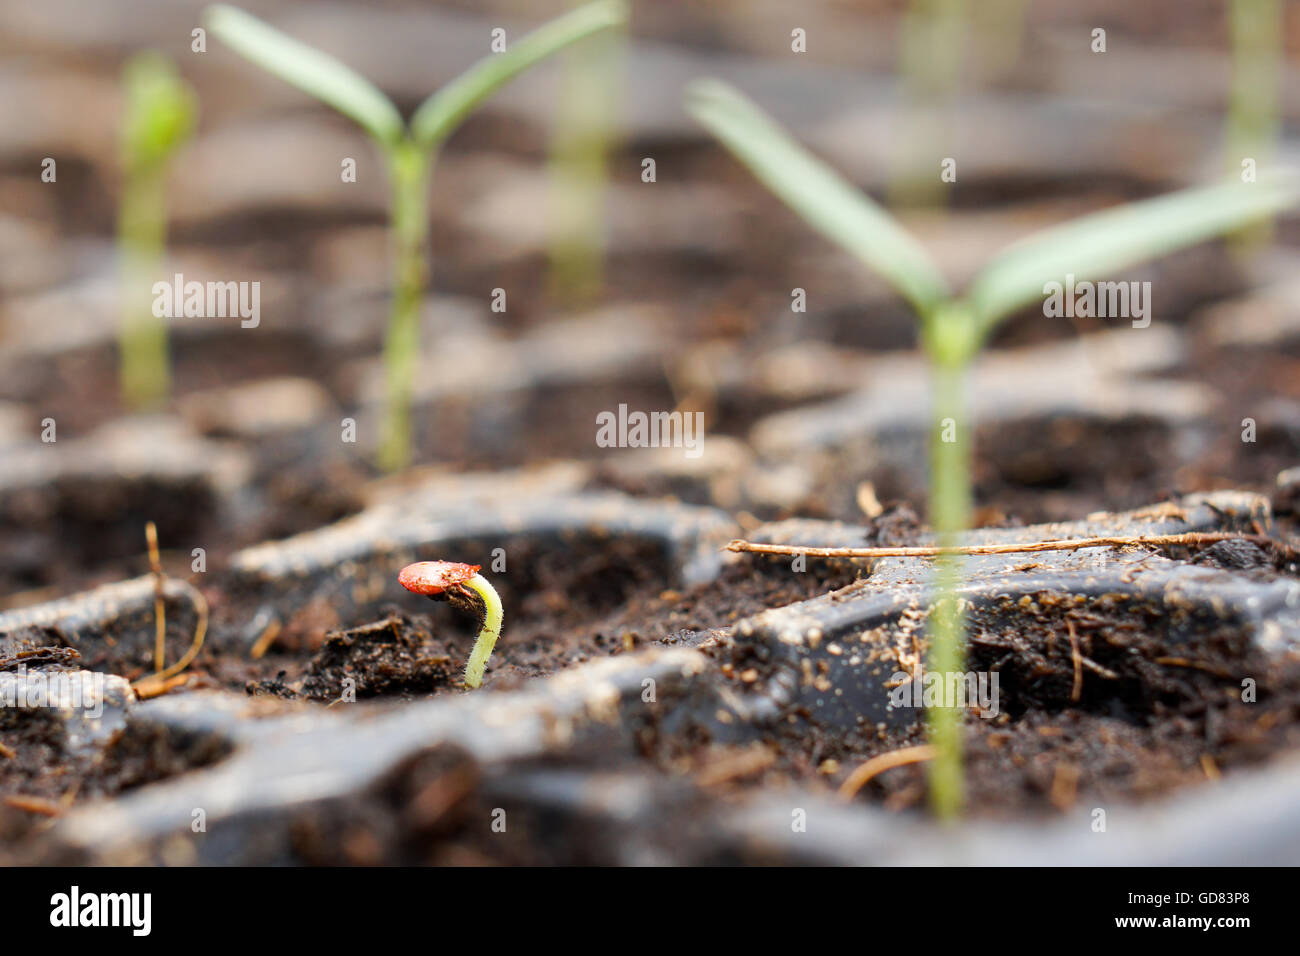 close up of tomato seedling that just emerge from soil with red color seed coat - Stock Image